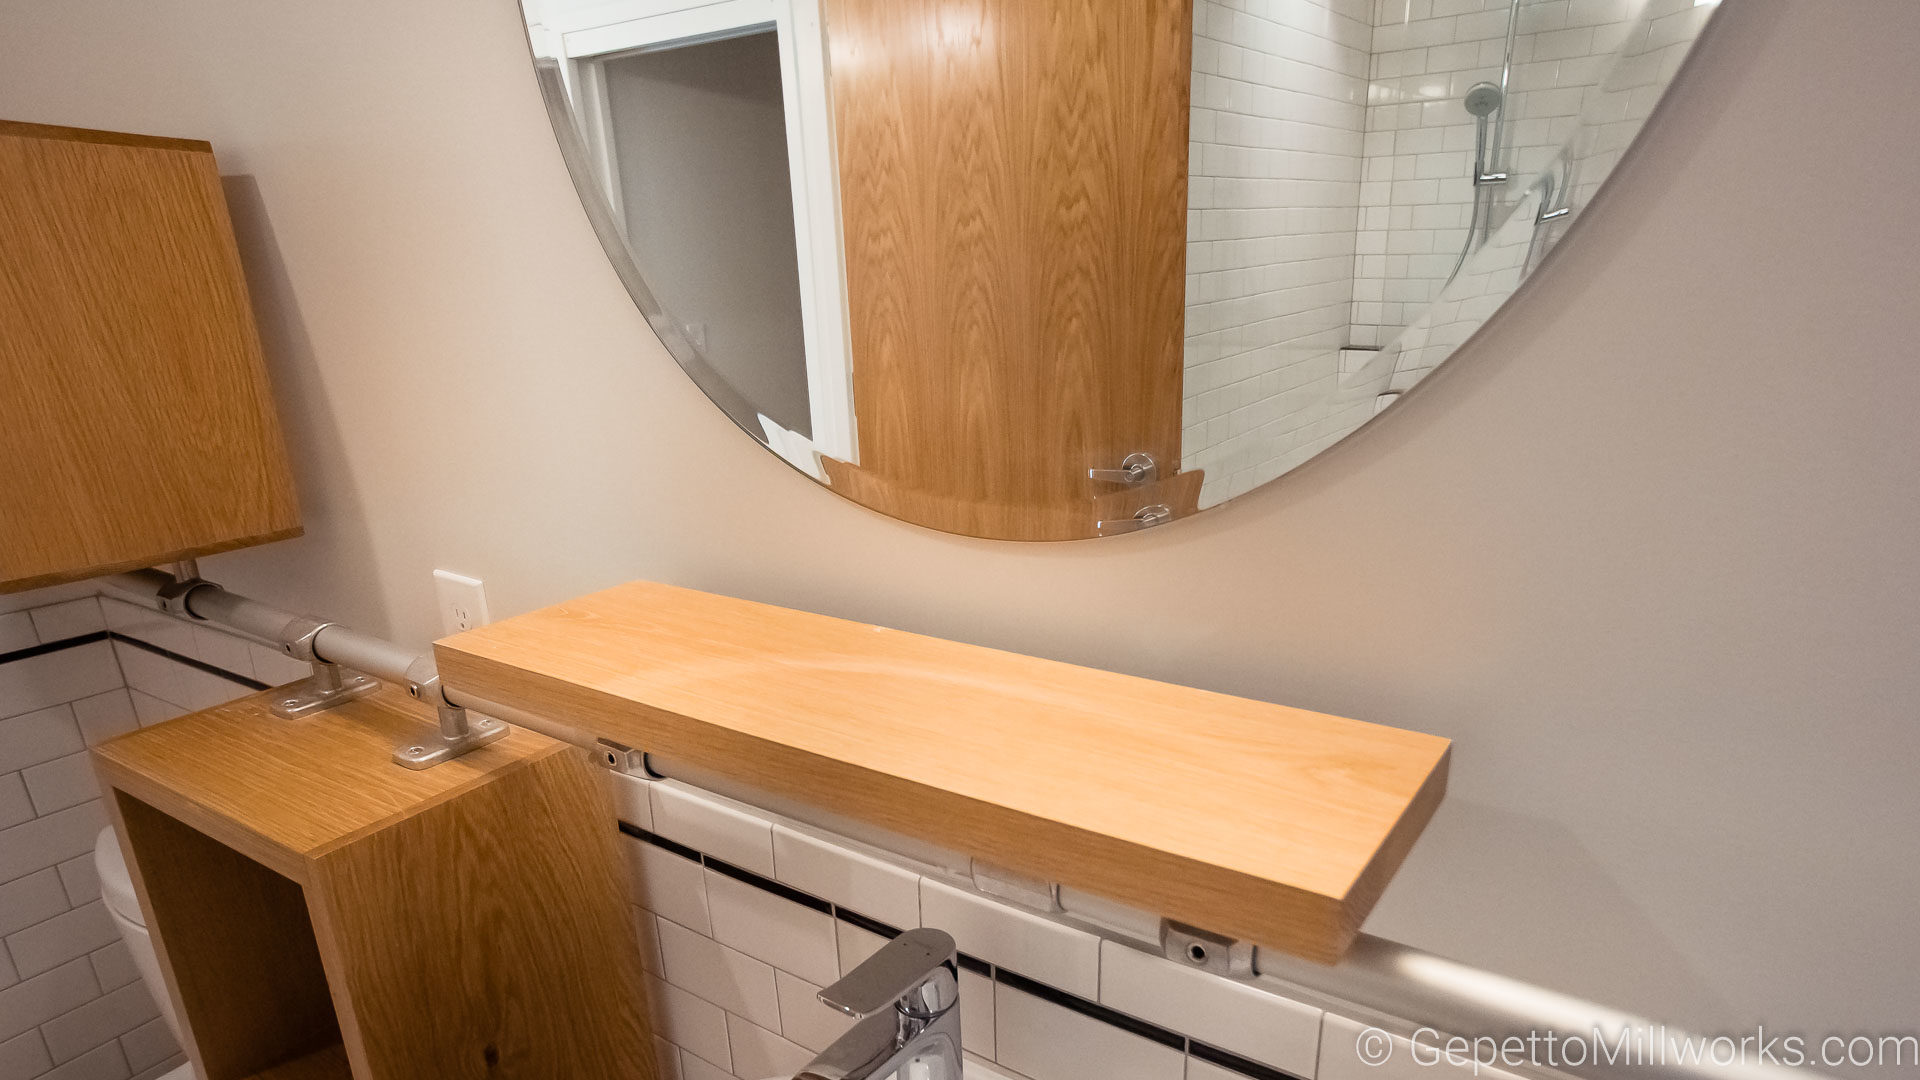 Ultra Modern Open Shelf Bathroom Concept Constructed of solid Oak